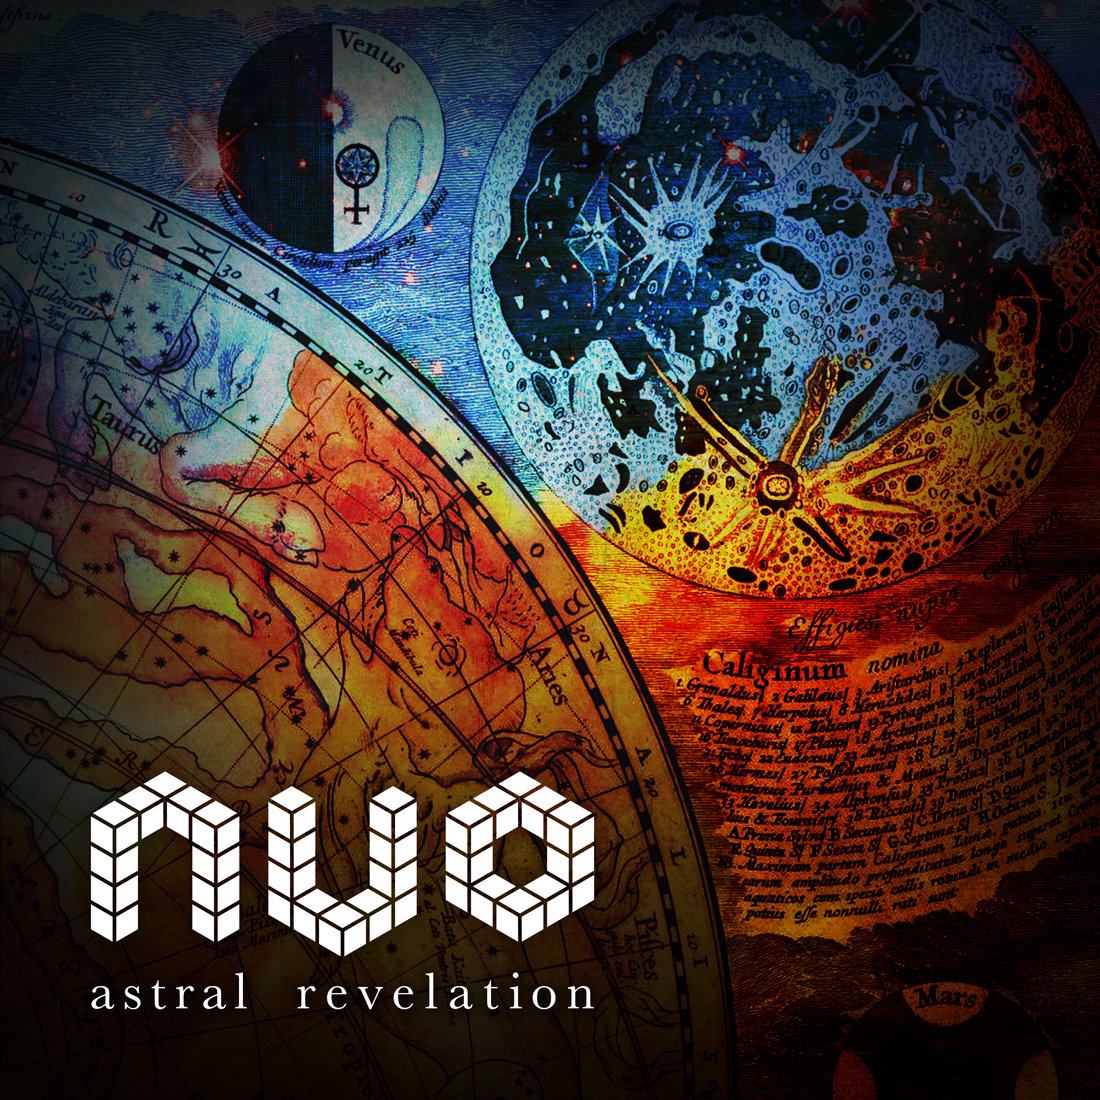 NVO - Astral Revelation (Original Mix) @ 'Astral Revelation' album (deep house, electro house)